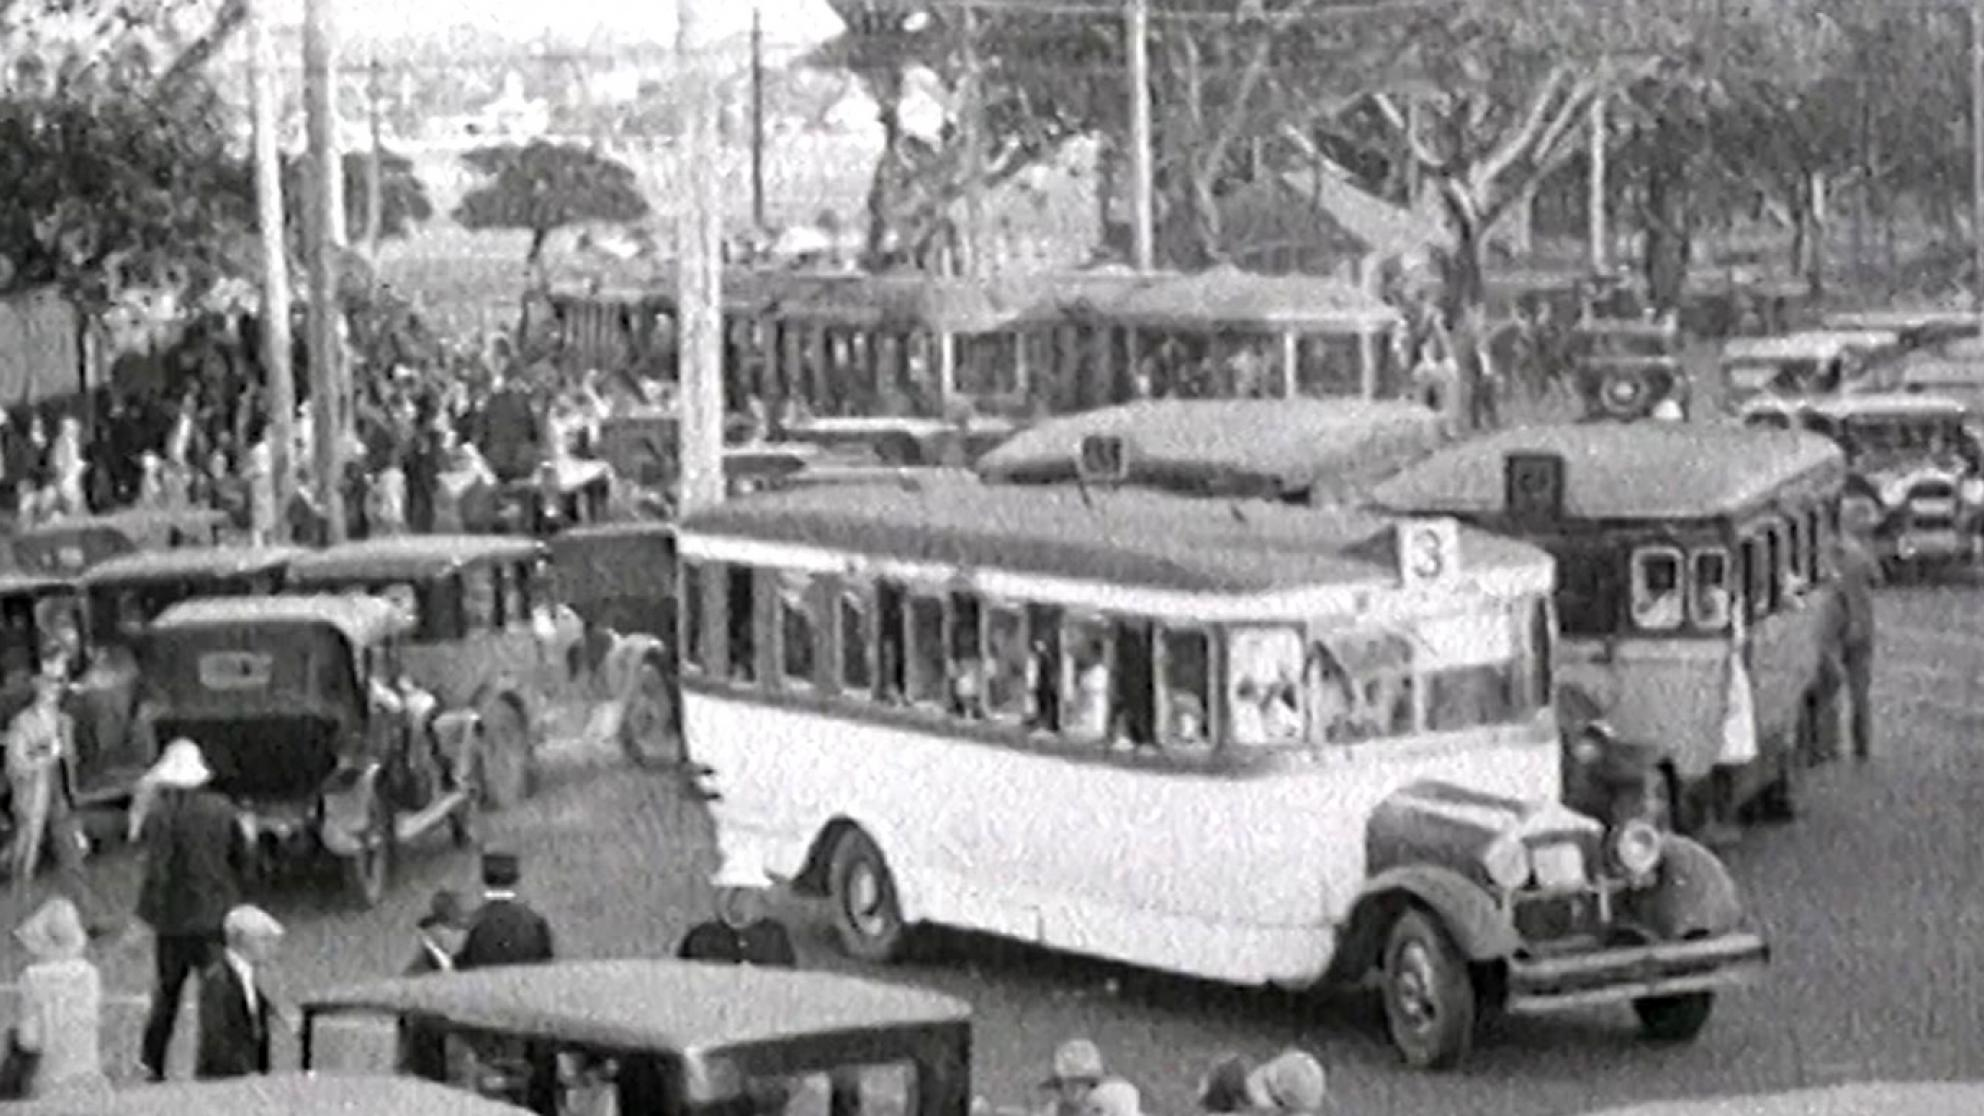 A picture from 1928 of ordered traffic chaos. Buses, trams and automobiles all crowd Anzac Parade Junction with fig trees in the background.